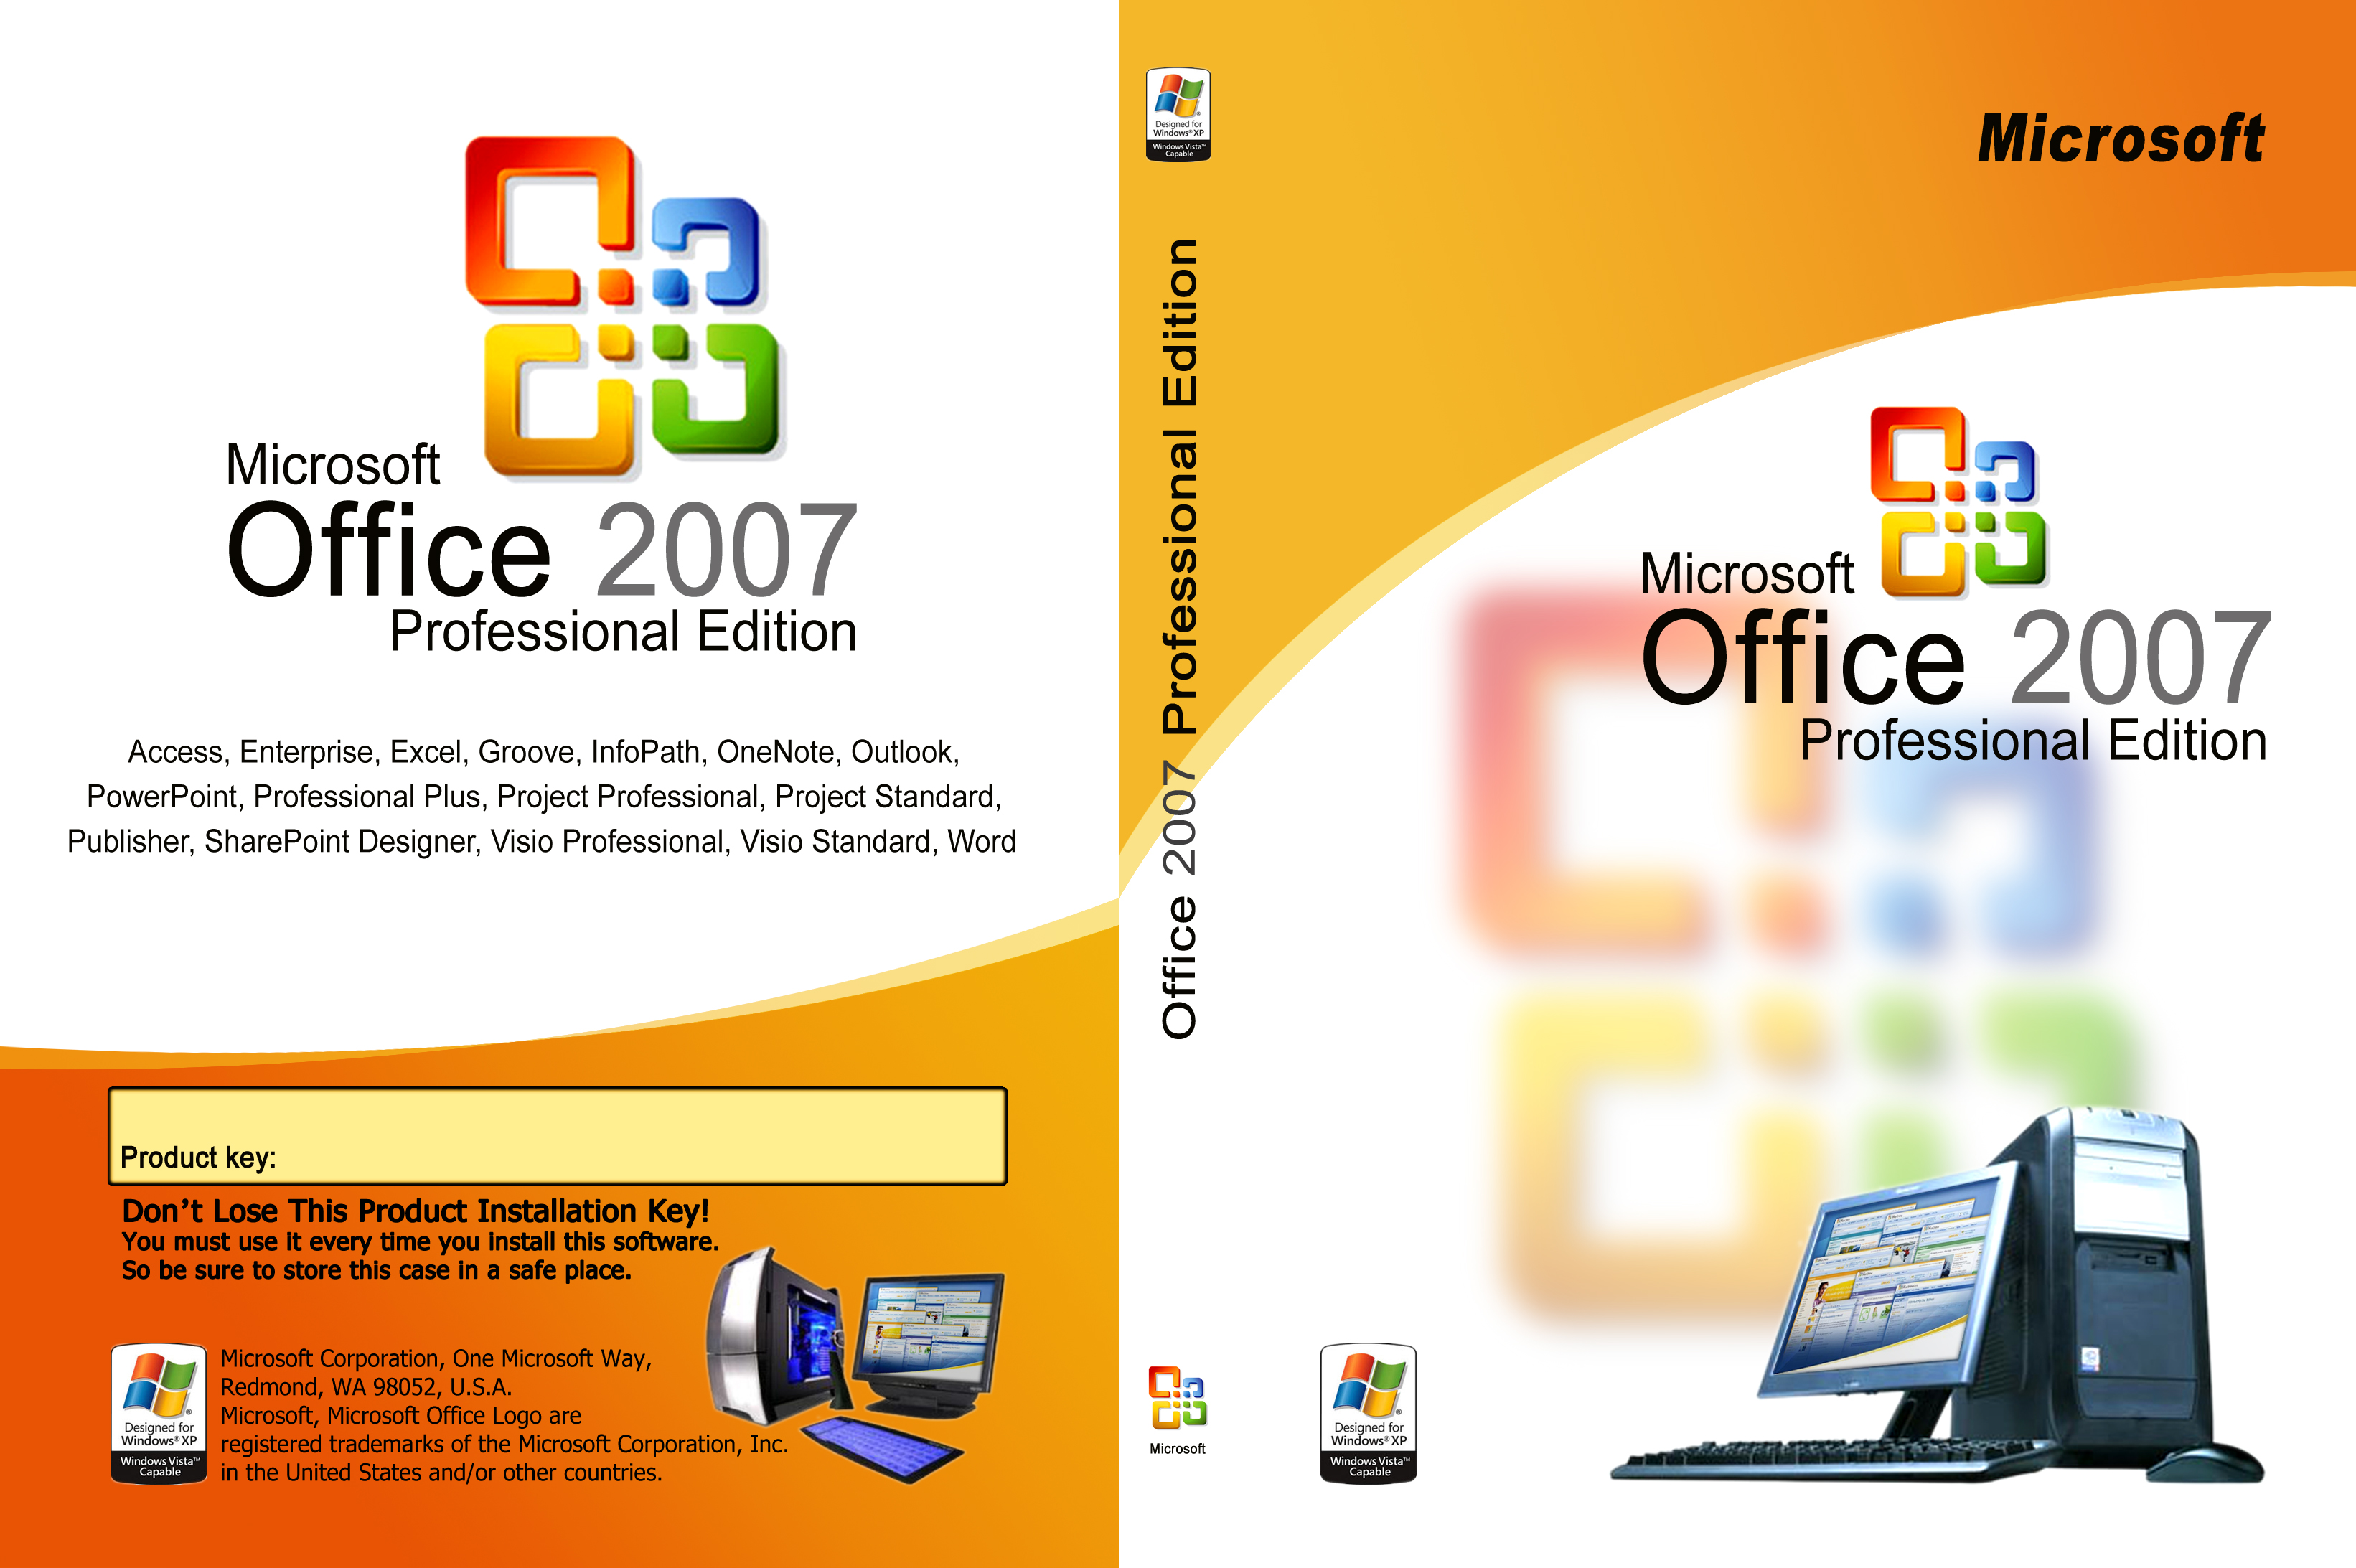 microsoft office visio 2007 product key microsoft office visio 2007 product key - Visio 2007 Serial Key